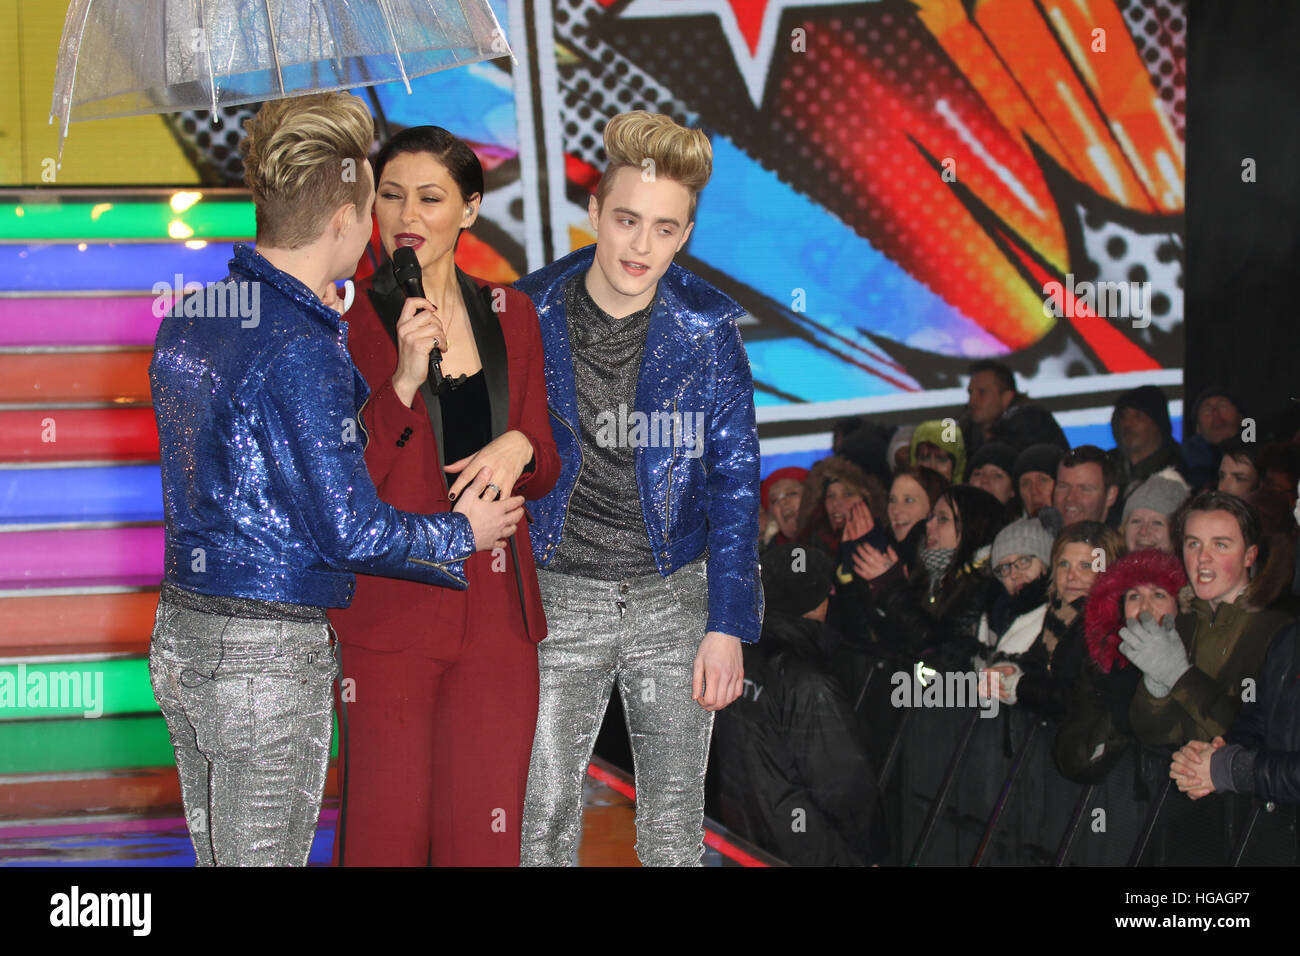 London, UK. 6th Jan, 2017. Jedward arrive as new housemates in this years Celebrity Big Brother. © David Johnson/Alamy - Stock Image